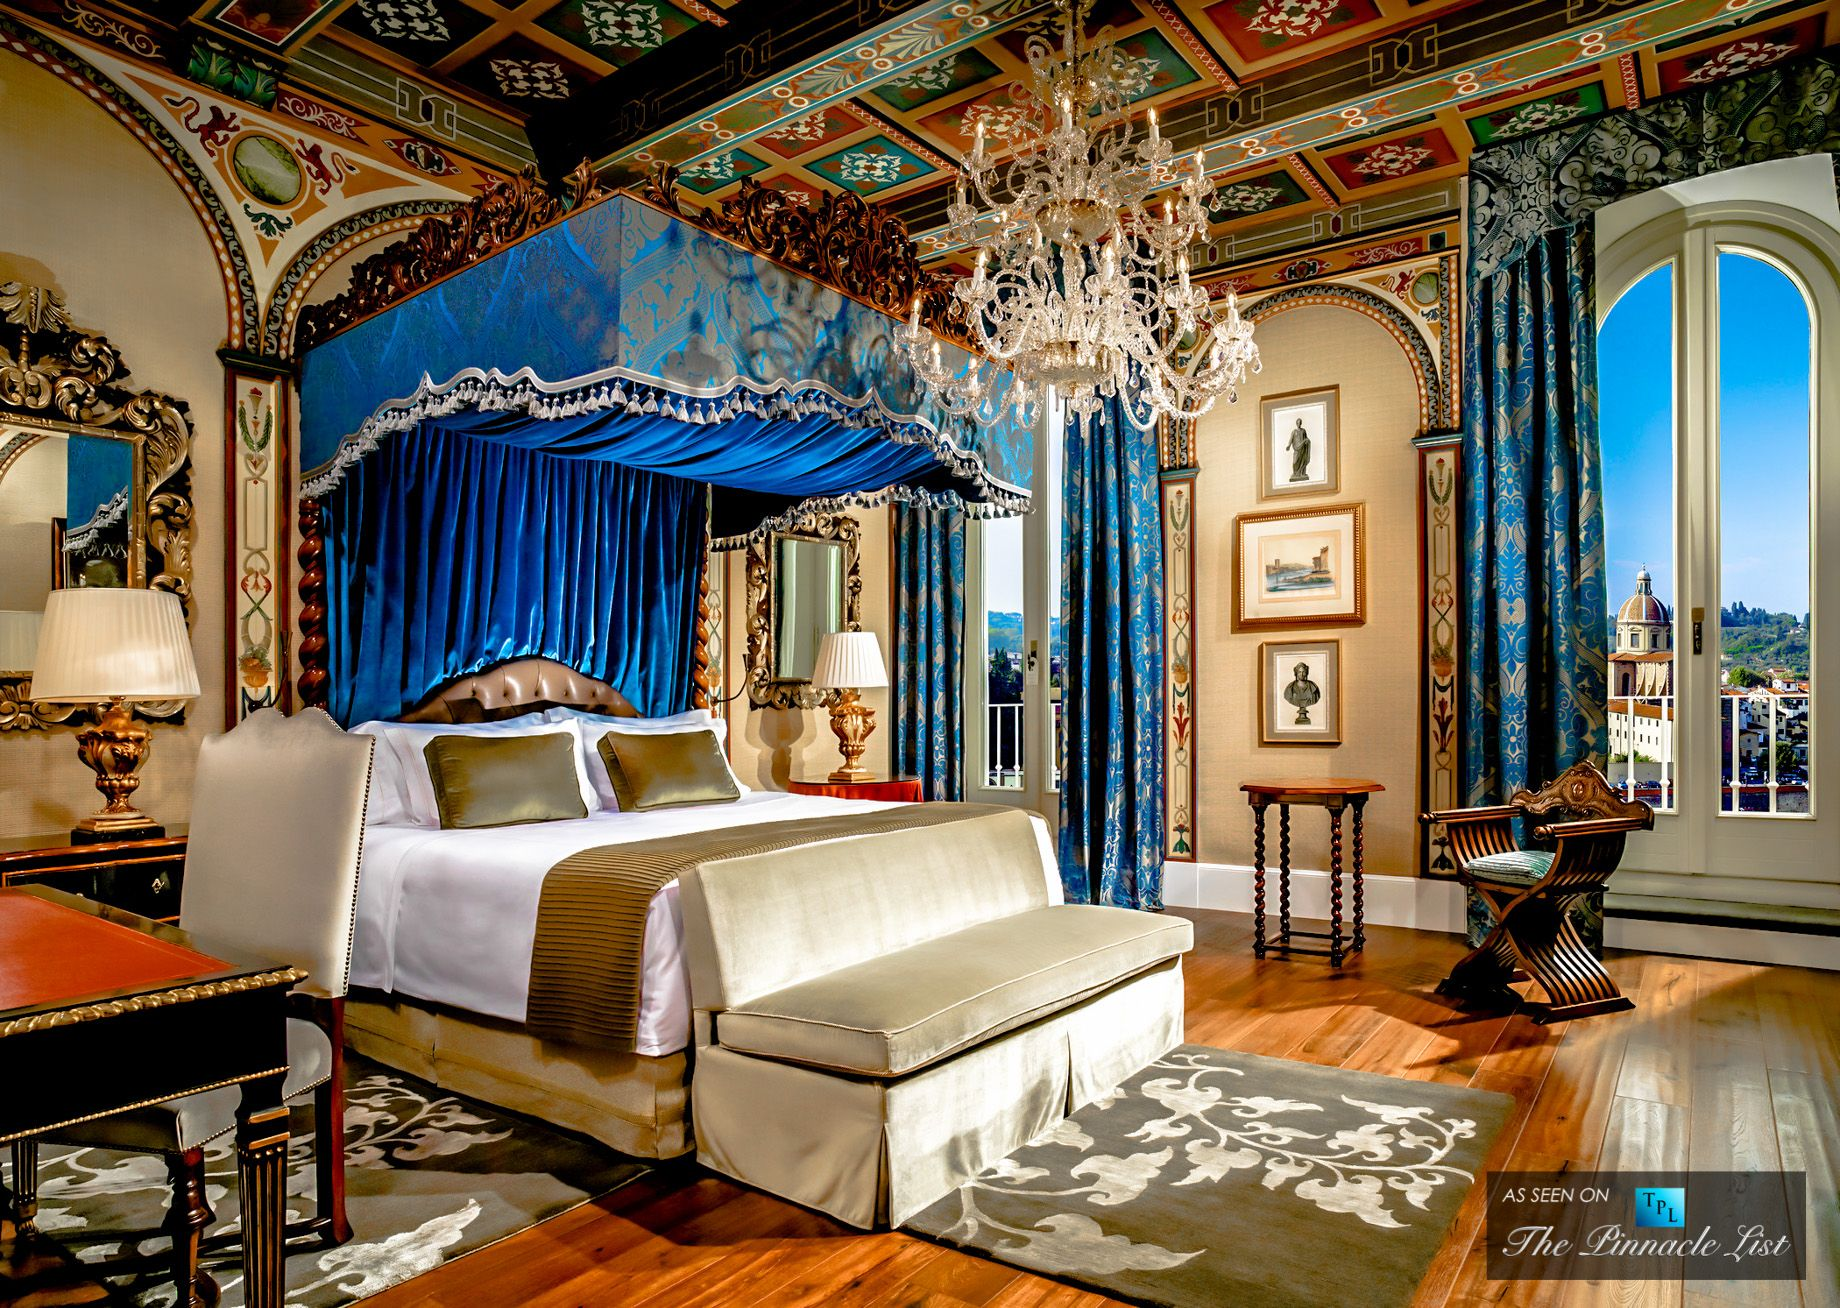 St regis luxury hotel florence italy royal suite for Hotel suite design